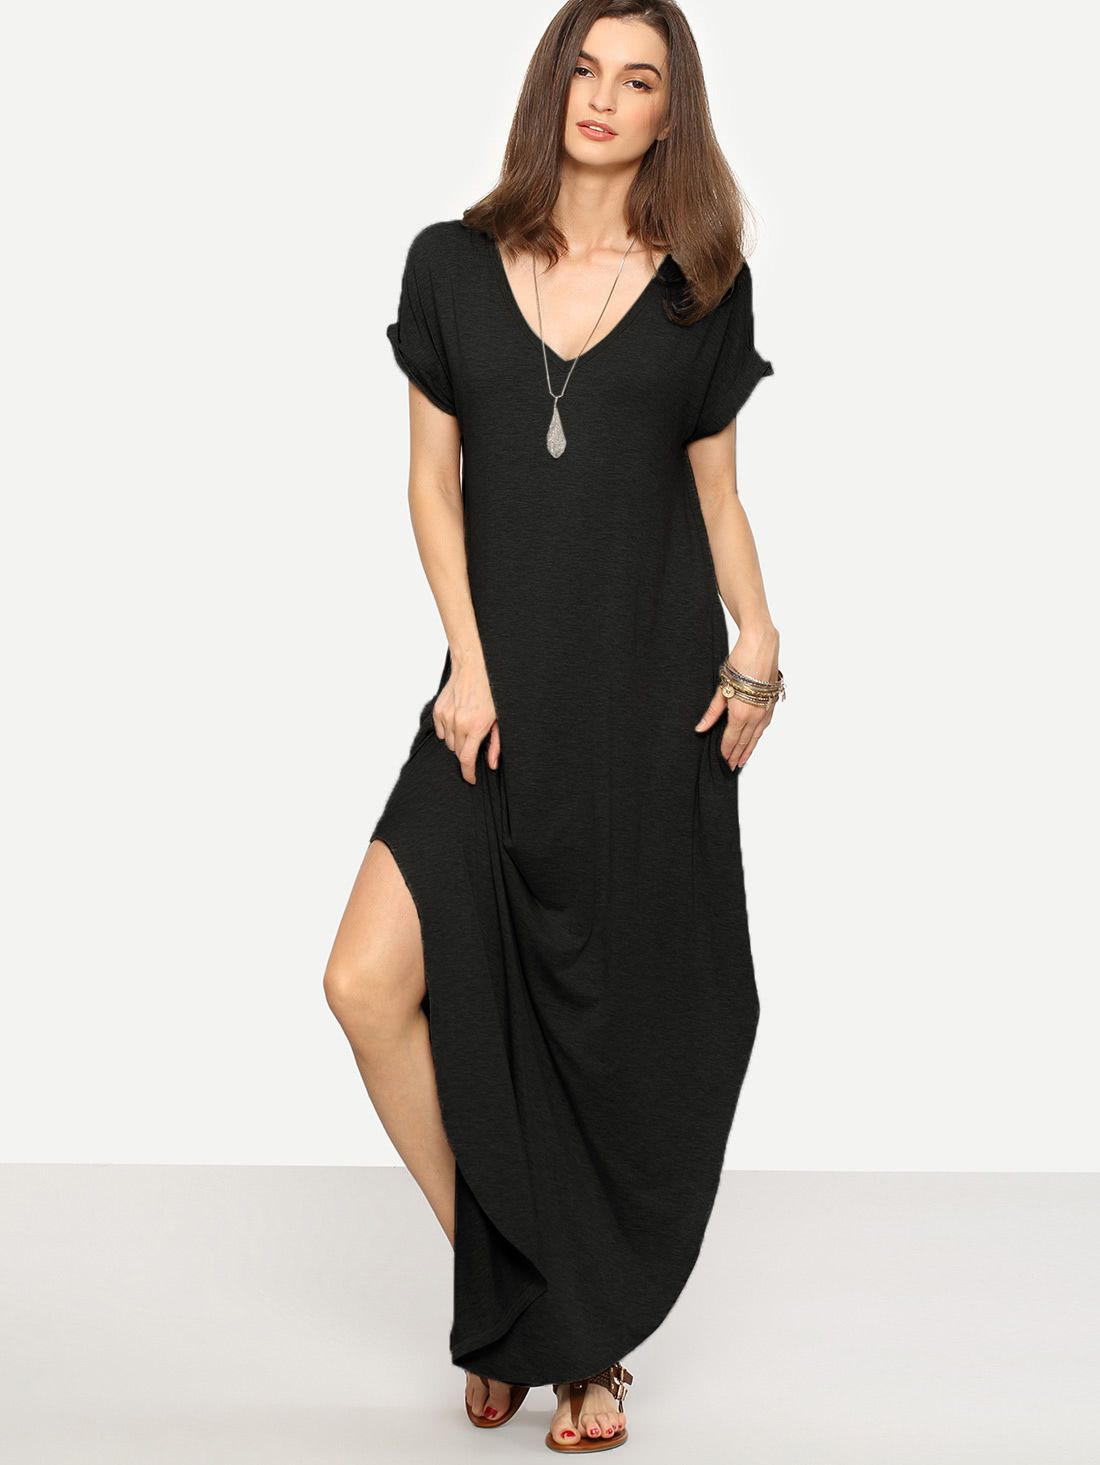 0fd512395bb84 Shop Rolled-cuff Pockets Side Split Curved Dress online. SheIn offers  Rolled-cuff Pockets Side Split Curved Dress & more to fit your fashionable  needs.